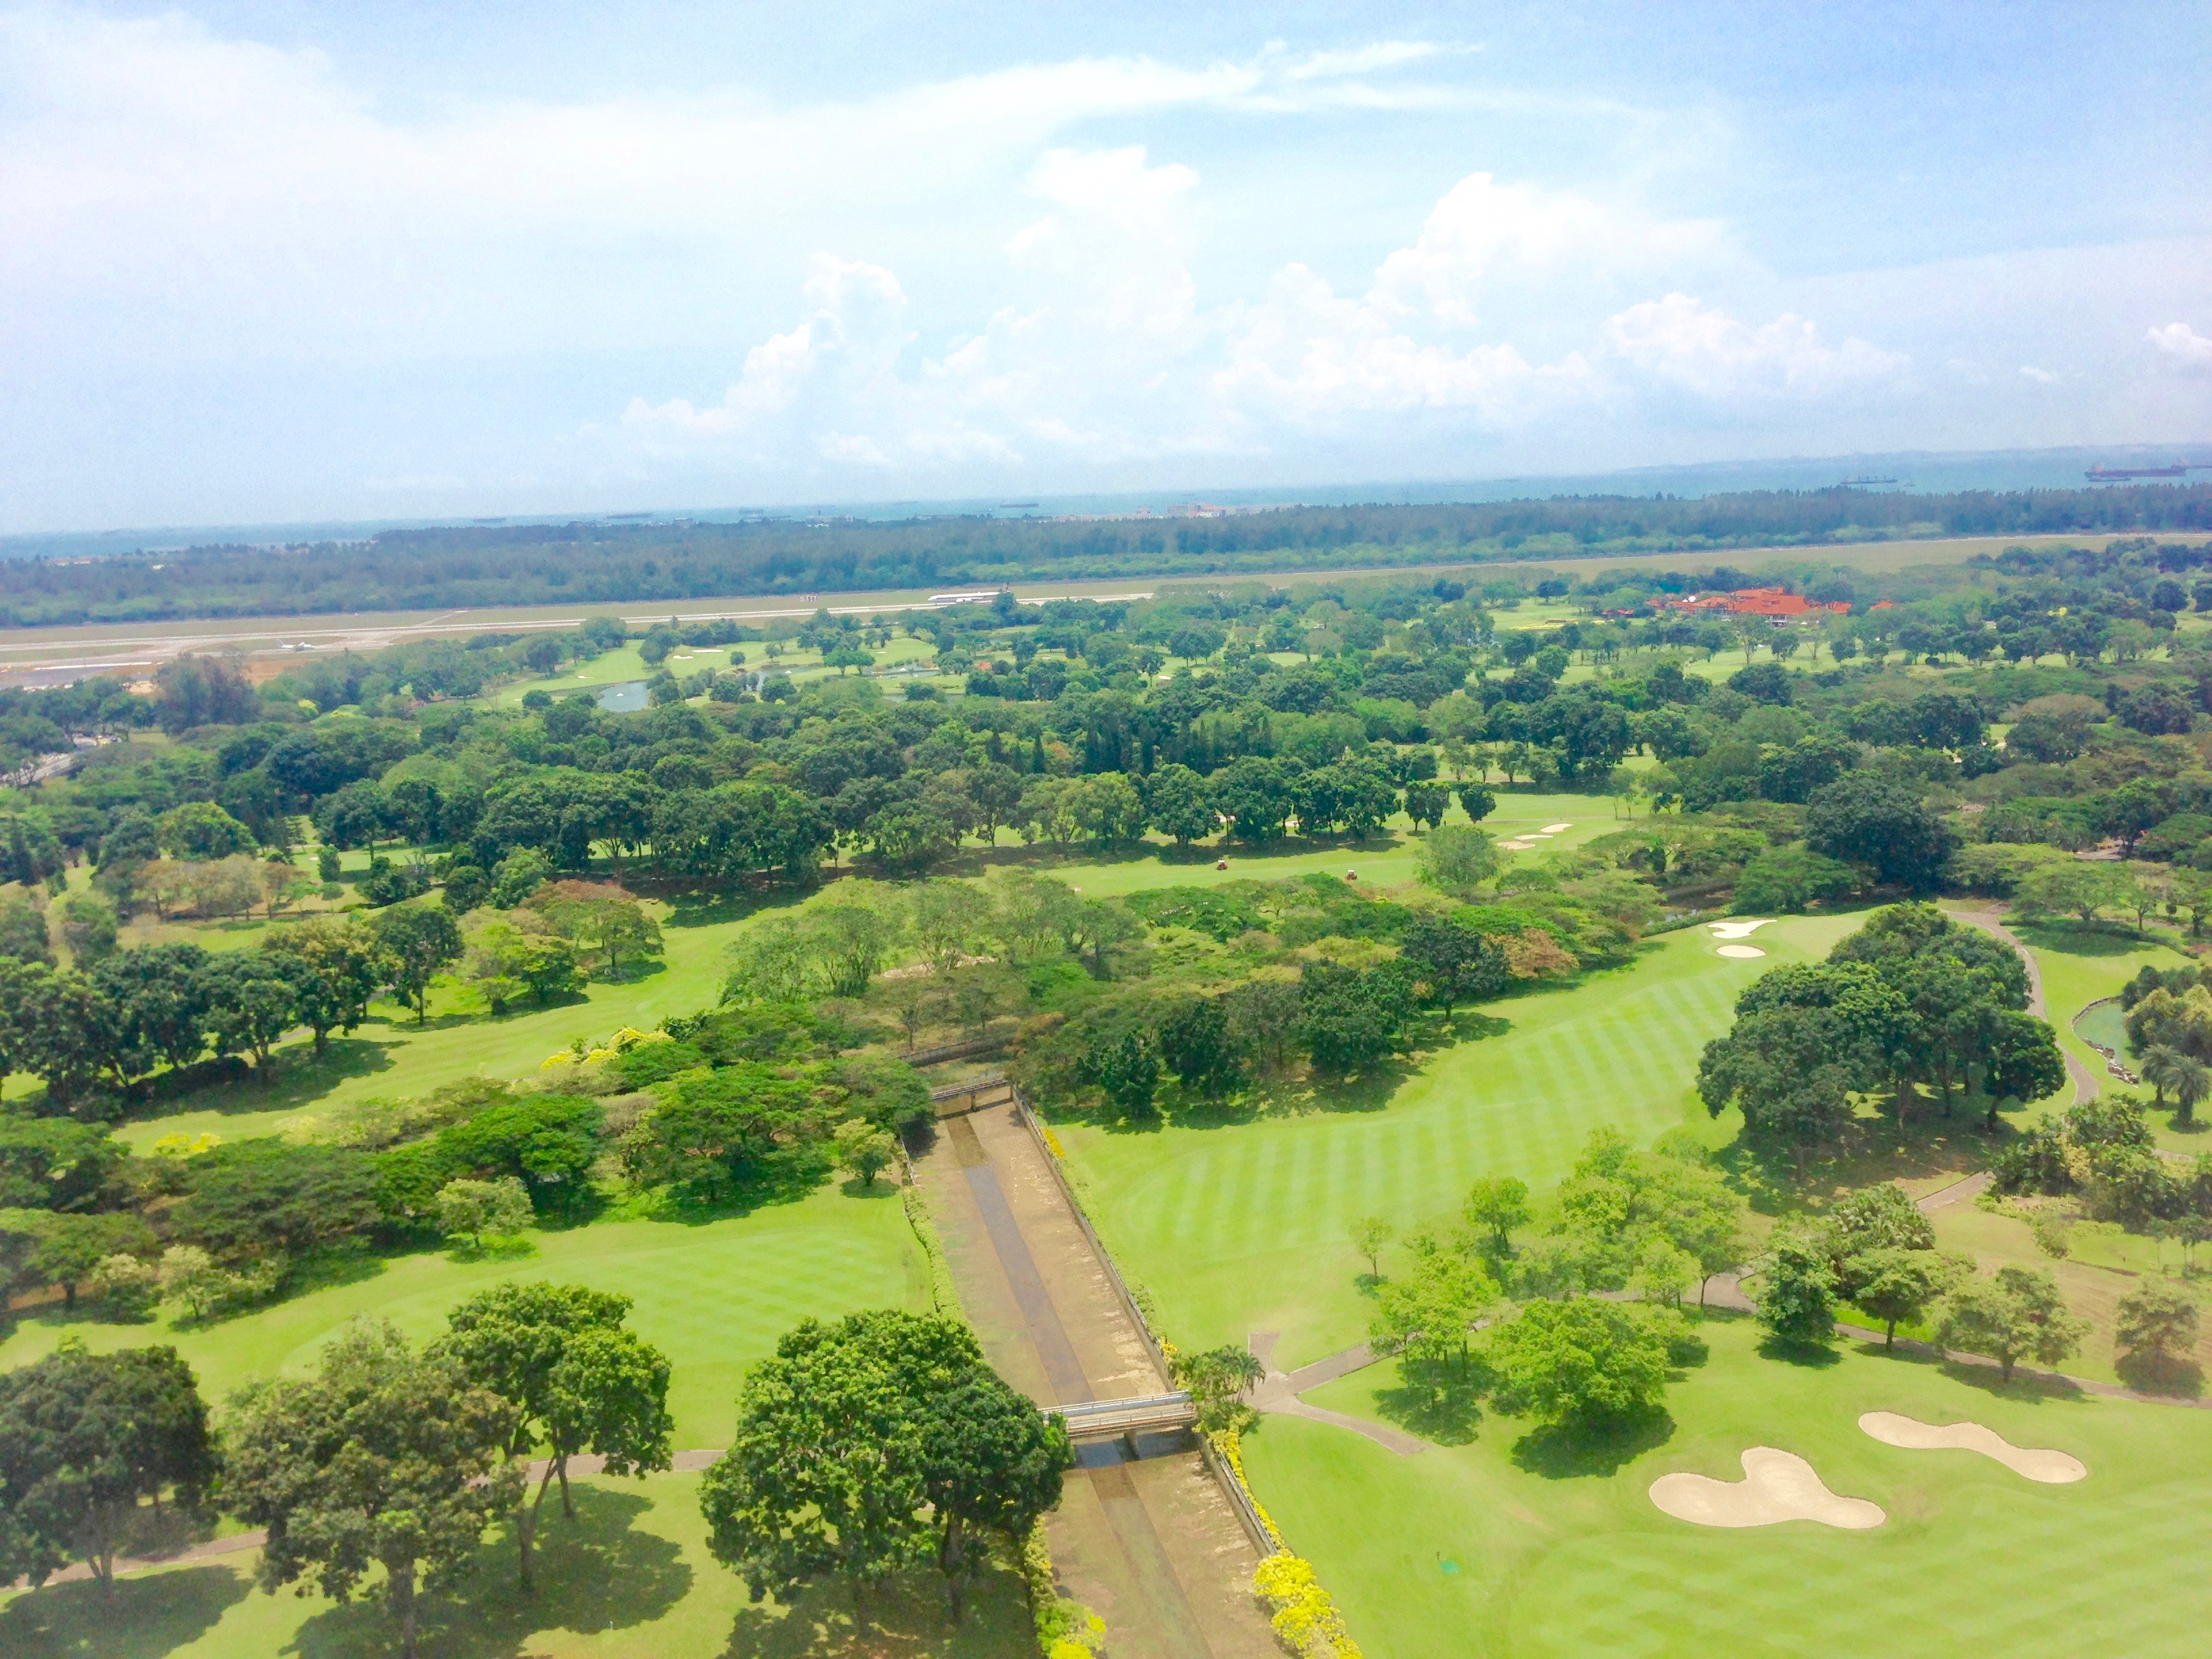 Sky View for the Gardens Before Changi Airport